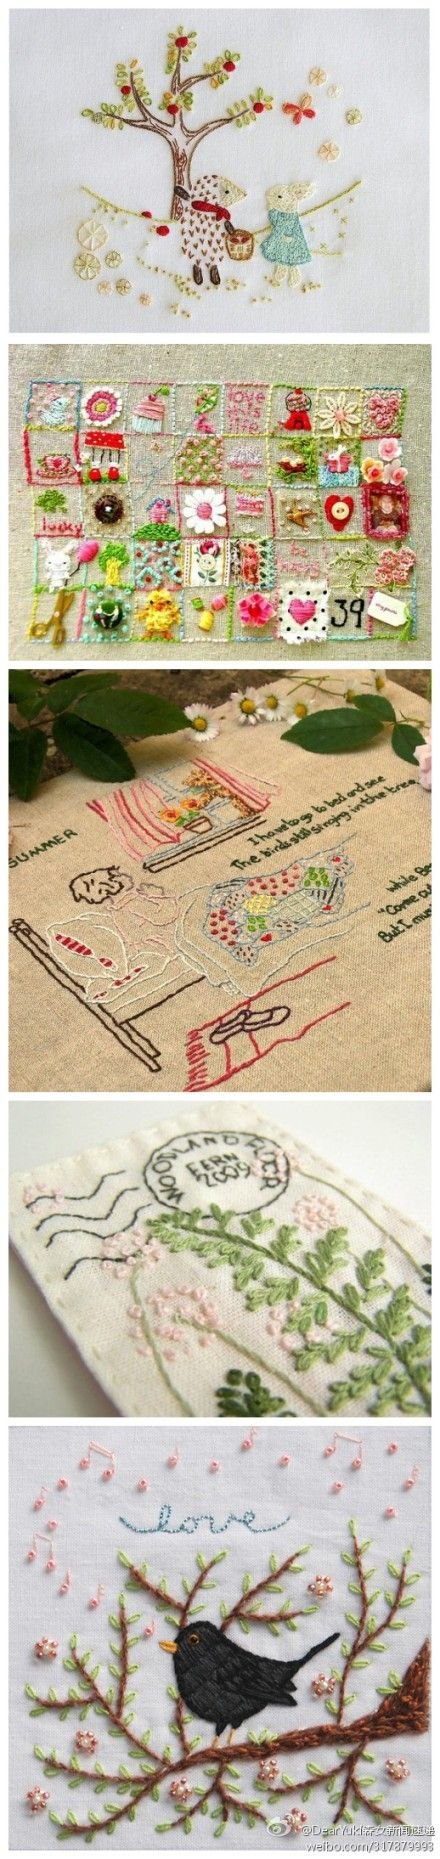 embroidery from Japanese site